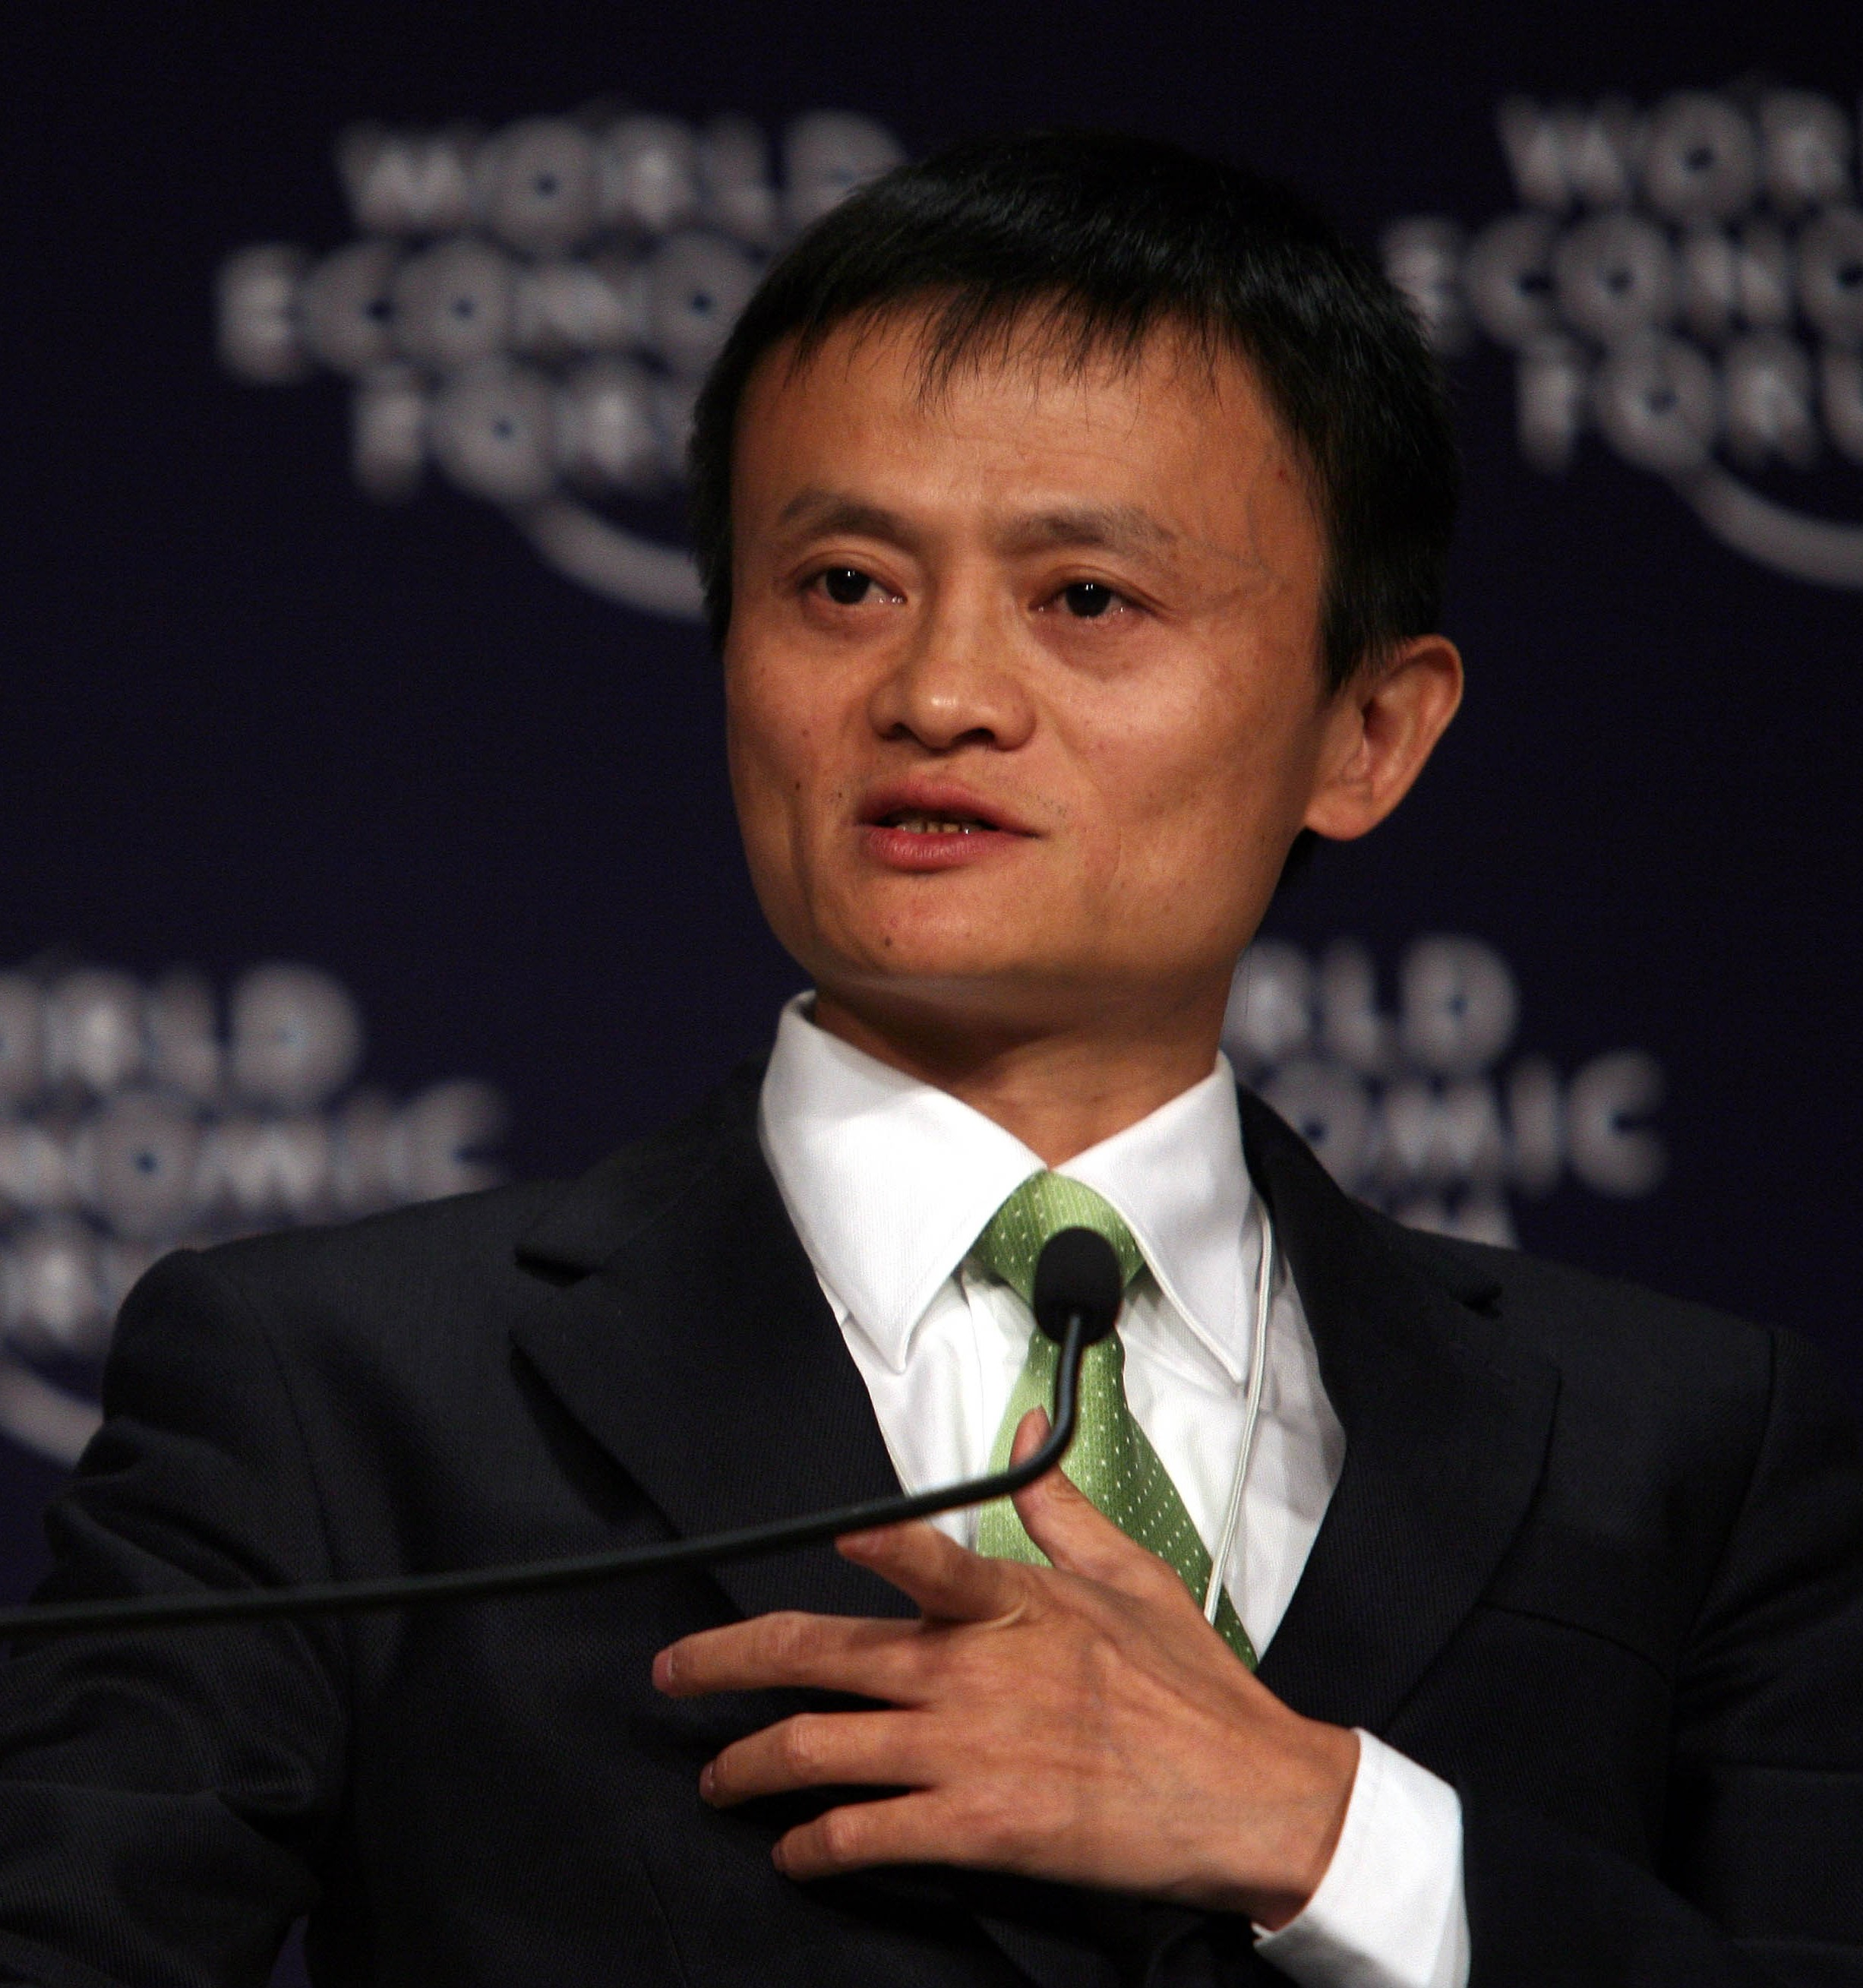 http://upload.wikimedia.org/wikipedia/commons/3/38/Jack_Ma_2008.jpg